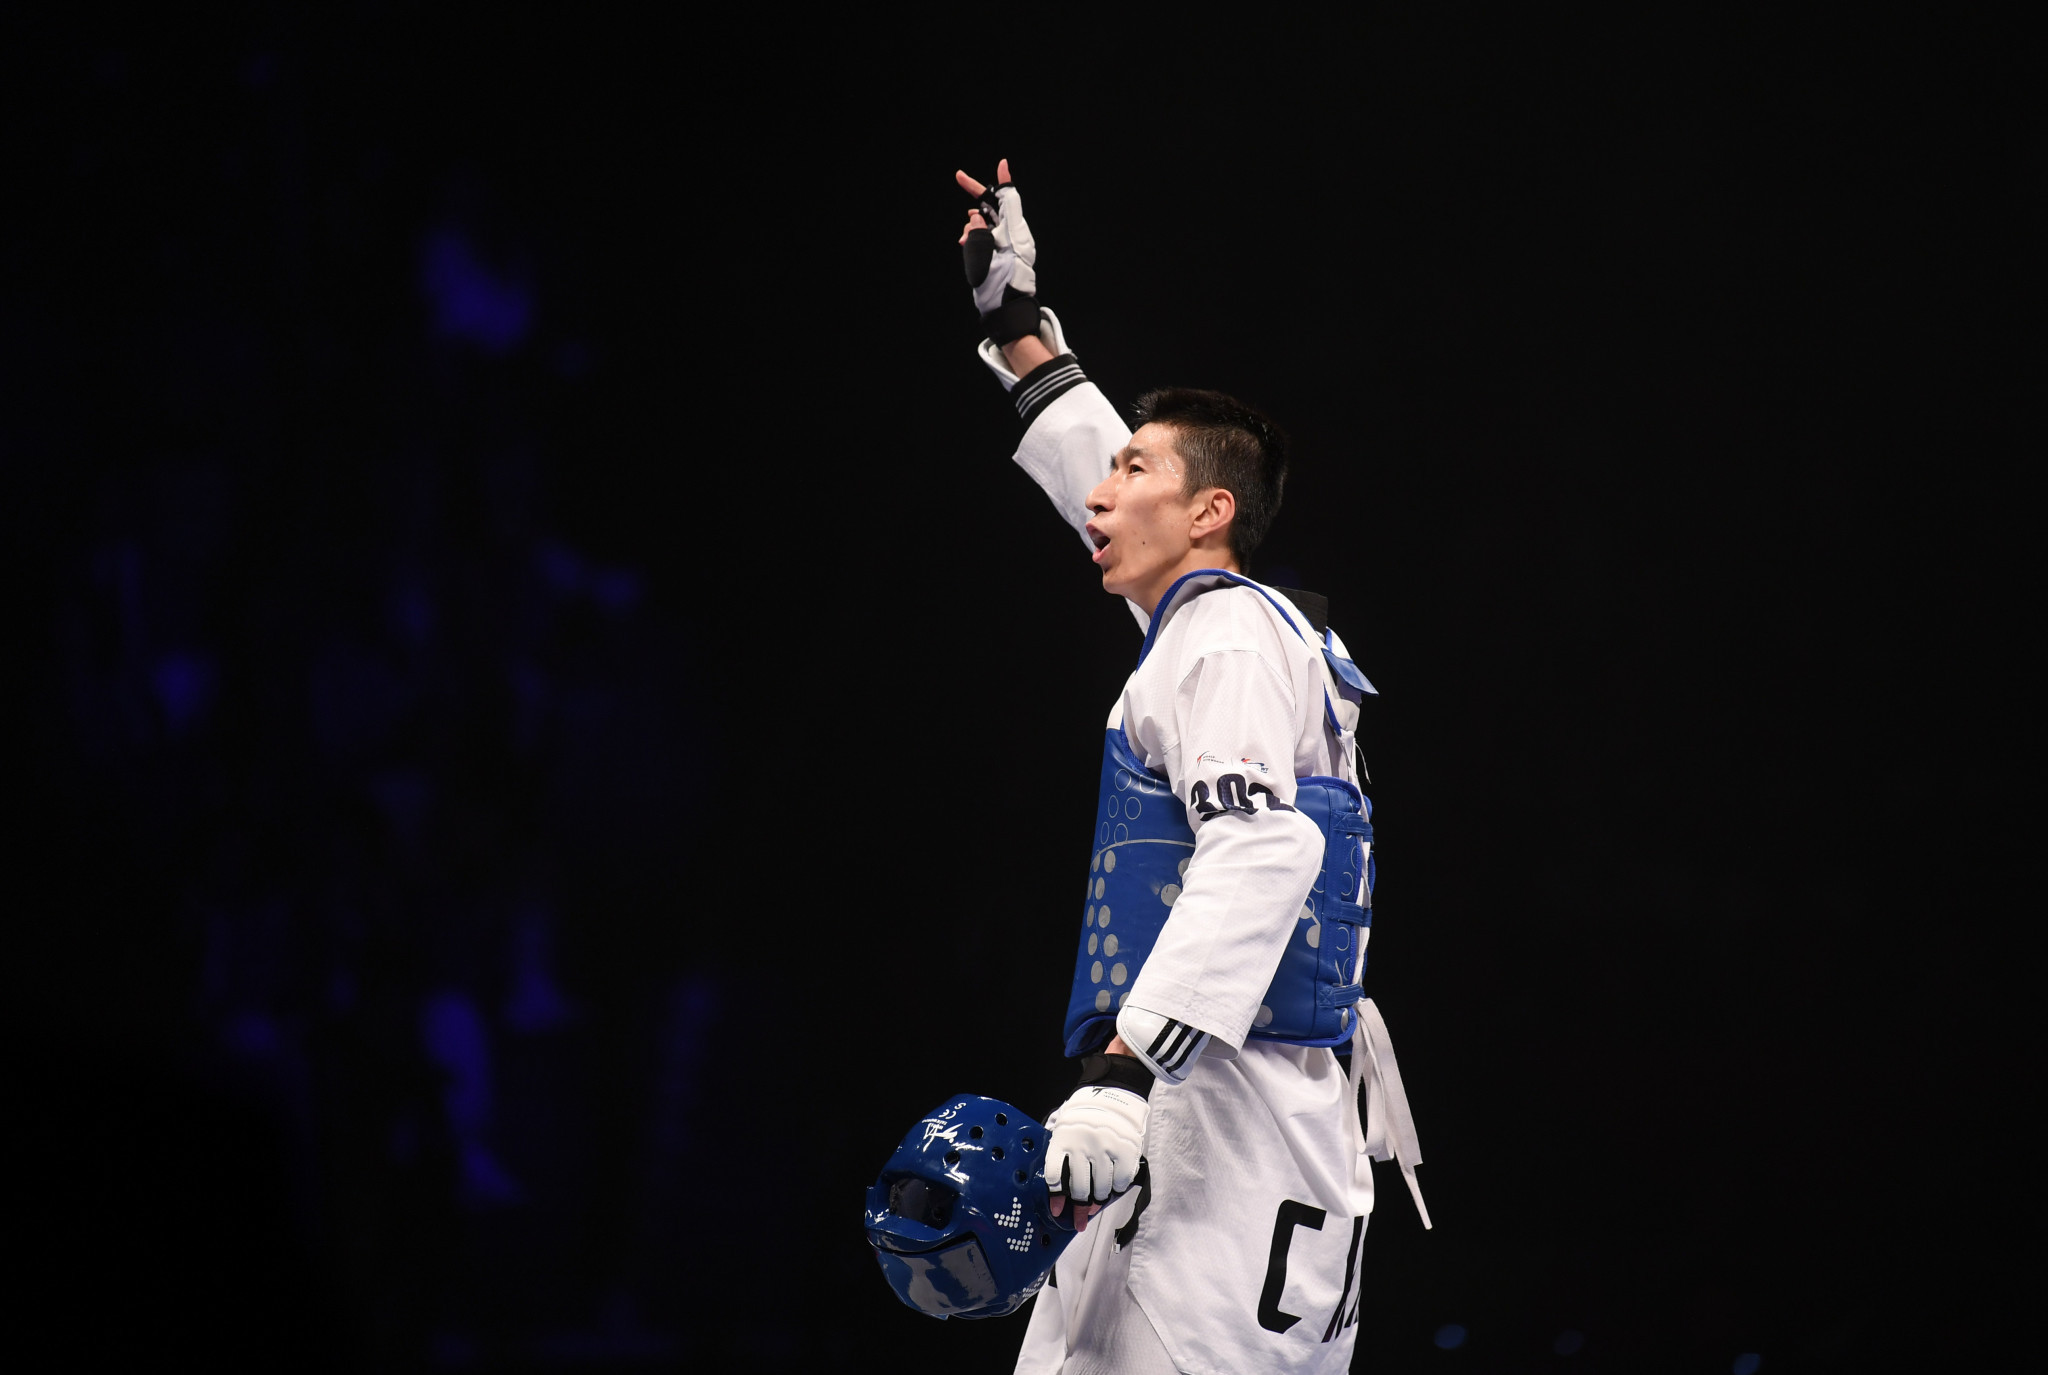 Olympic champion Zhao Shuai retained his world title at the 2019 World Taekwondo Championships ©Getty Images